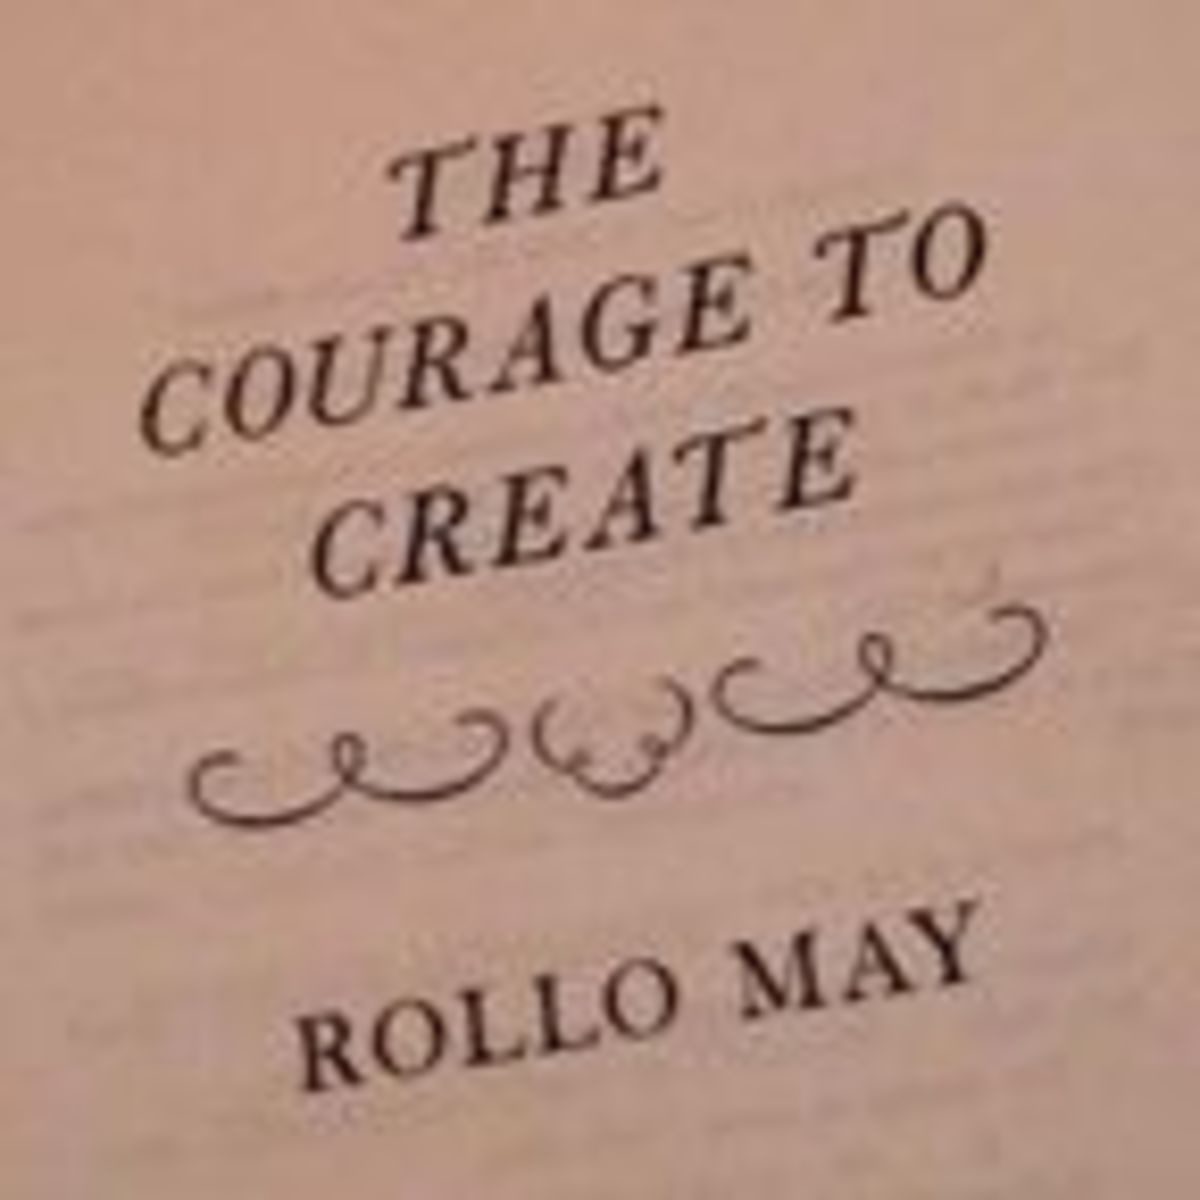 Rollo May and the Courage to Create | Psychology Today Ireland